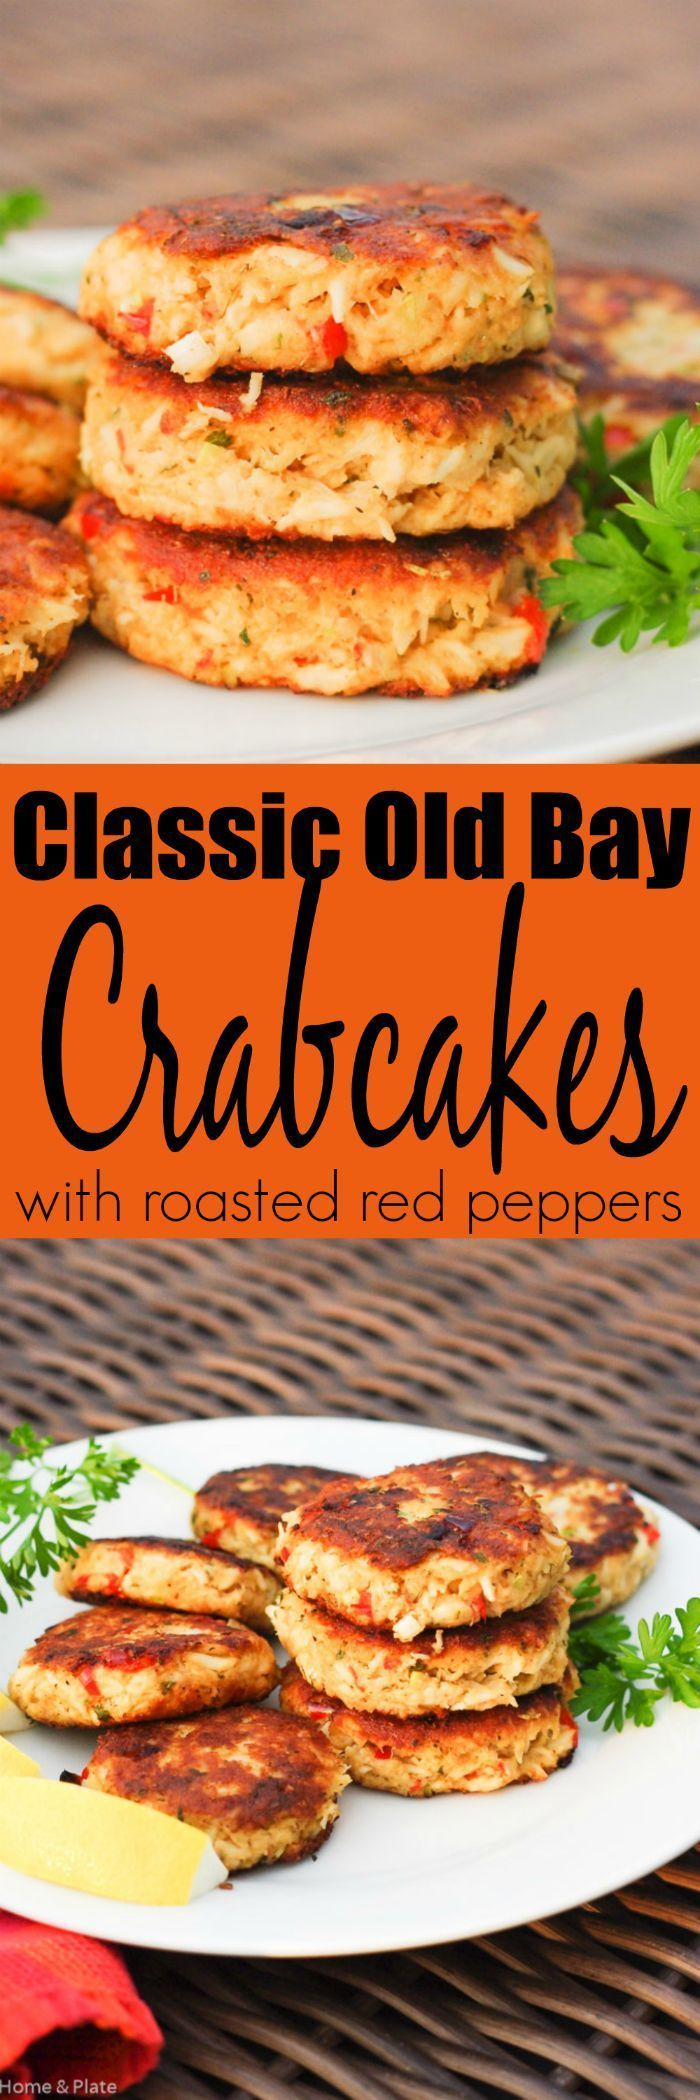 Classic Old Bay Crab Cakes with Roasted Red Peppers | Home & Plate | http://www.homeandplate.com | The secret to these classic crab cakes is that the succulent crab meat is mixed with just the right amount of crunchy Panko breadcrumbs.